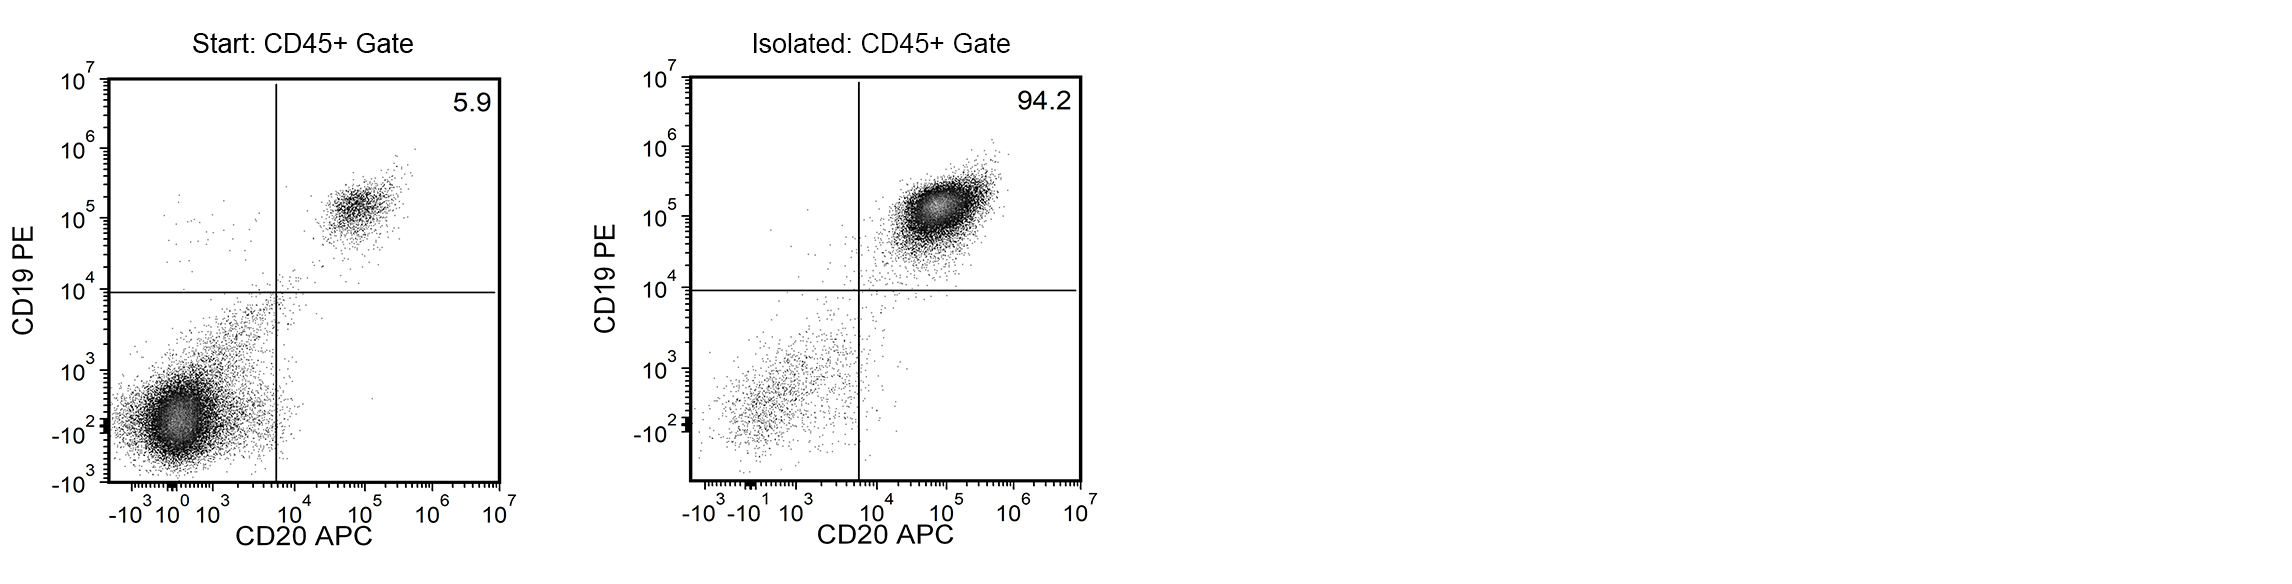 Using the EasySep™ Release Human APC Positive Selection Kit, the frequencies of CD45+ cells in the starting and isolated fractions are 5.9% and 94.2%, respectively.